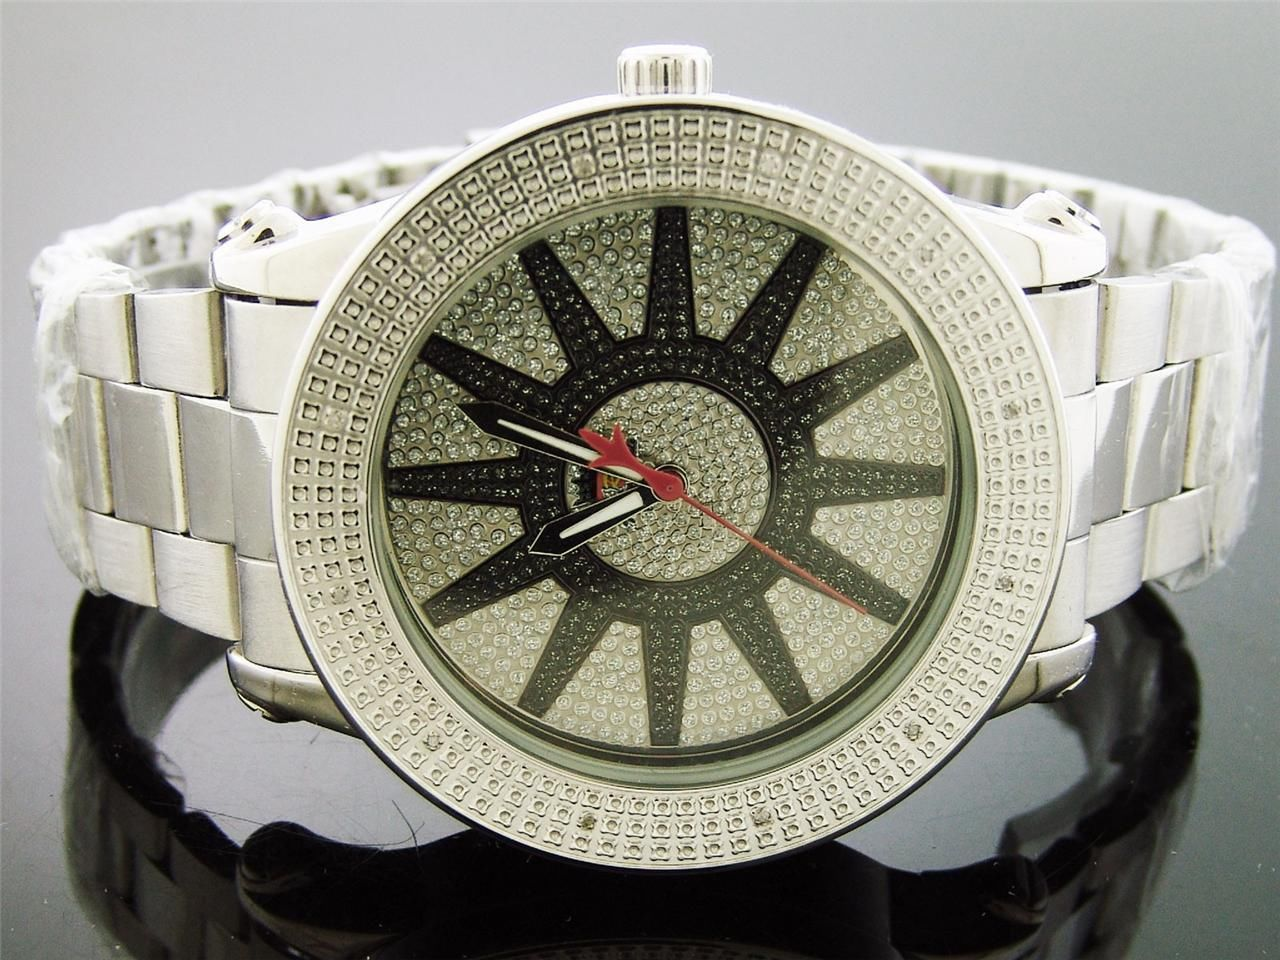 Primary image for Techno Royale 50mm Round Silver Tone 12 Diamonds Watch silver black face